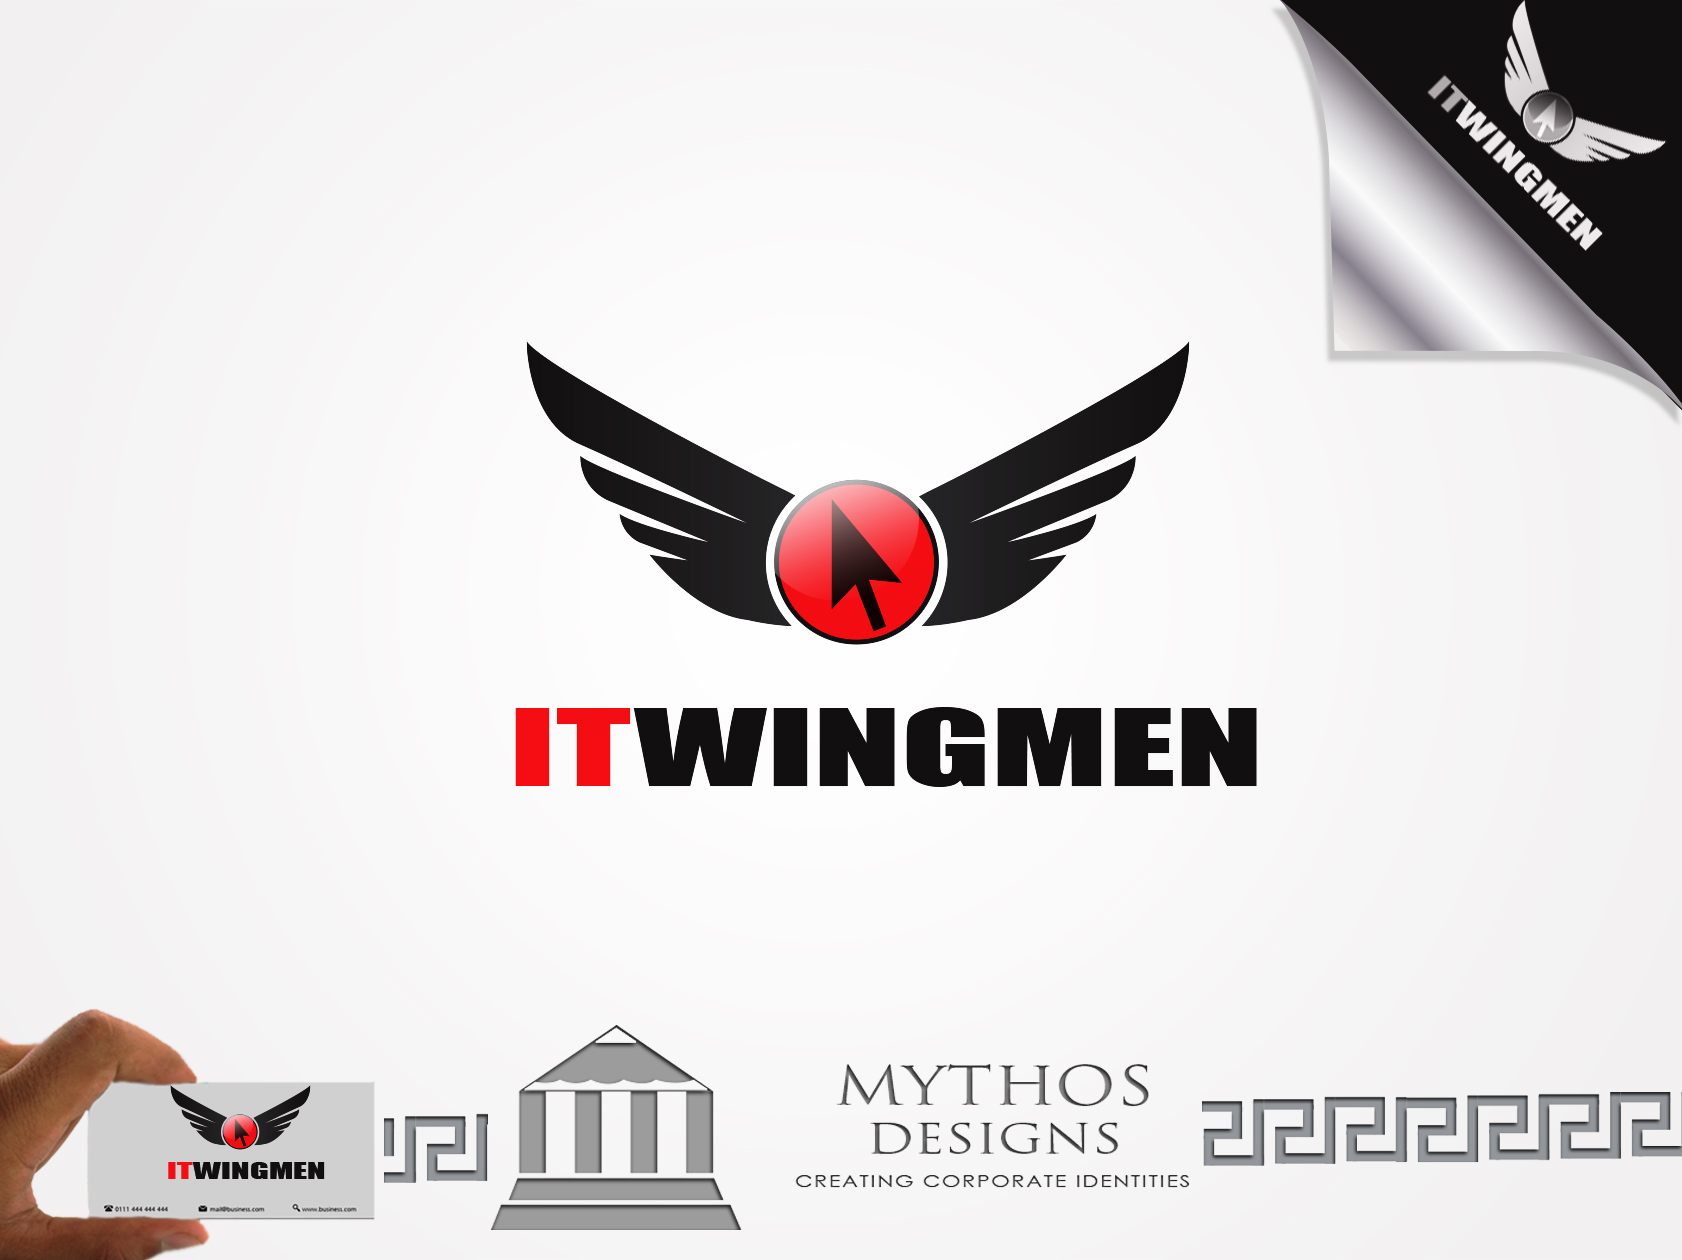 Logo Design by Mythos Designs - Entry No. 69 in the Logo Design Contest New Logo Design for IT Wingmen.